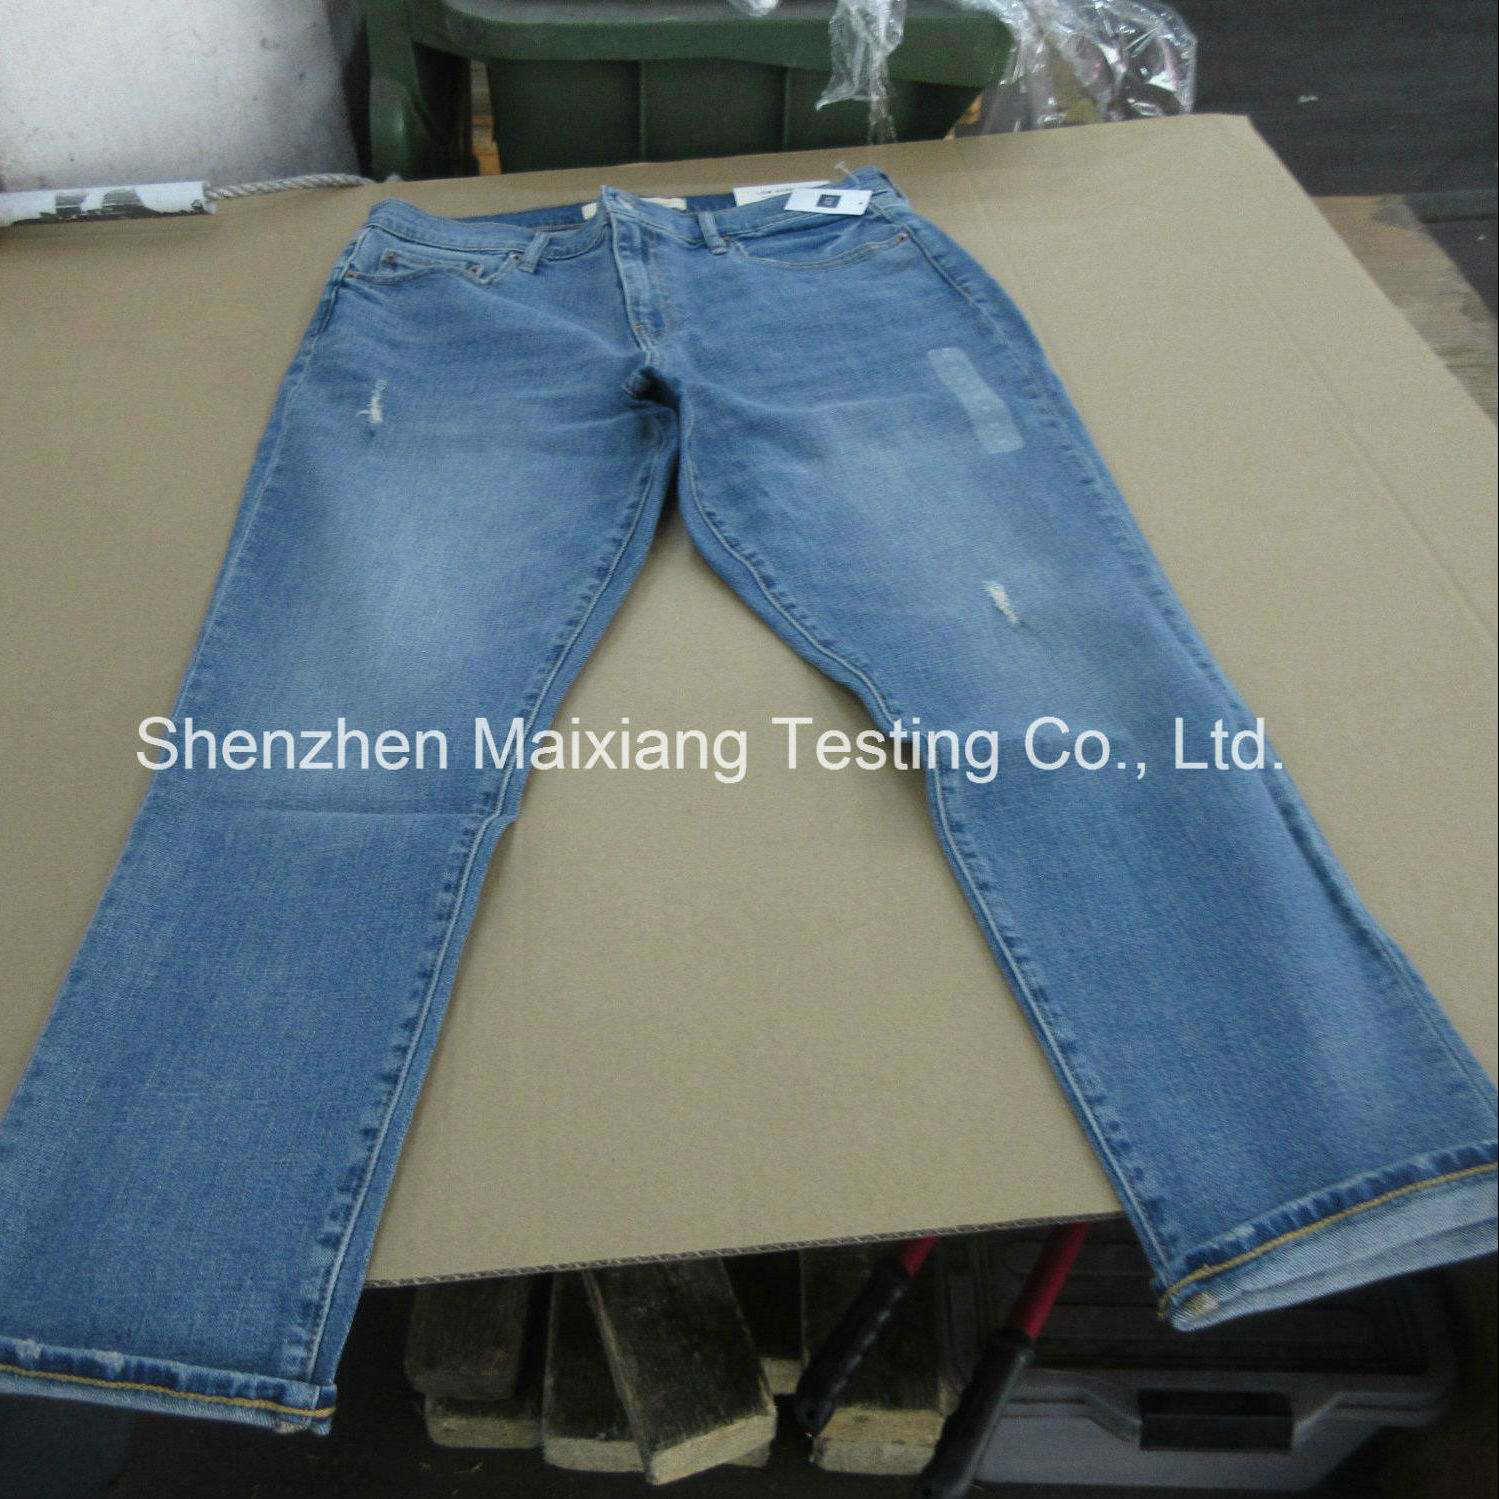 Initial Production Check/Dupro Inspection/Final Inspection/Pre-Shipment Inspection